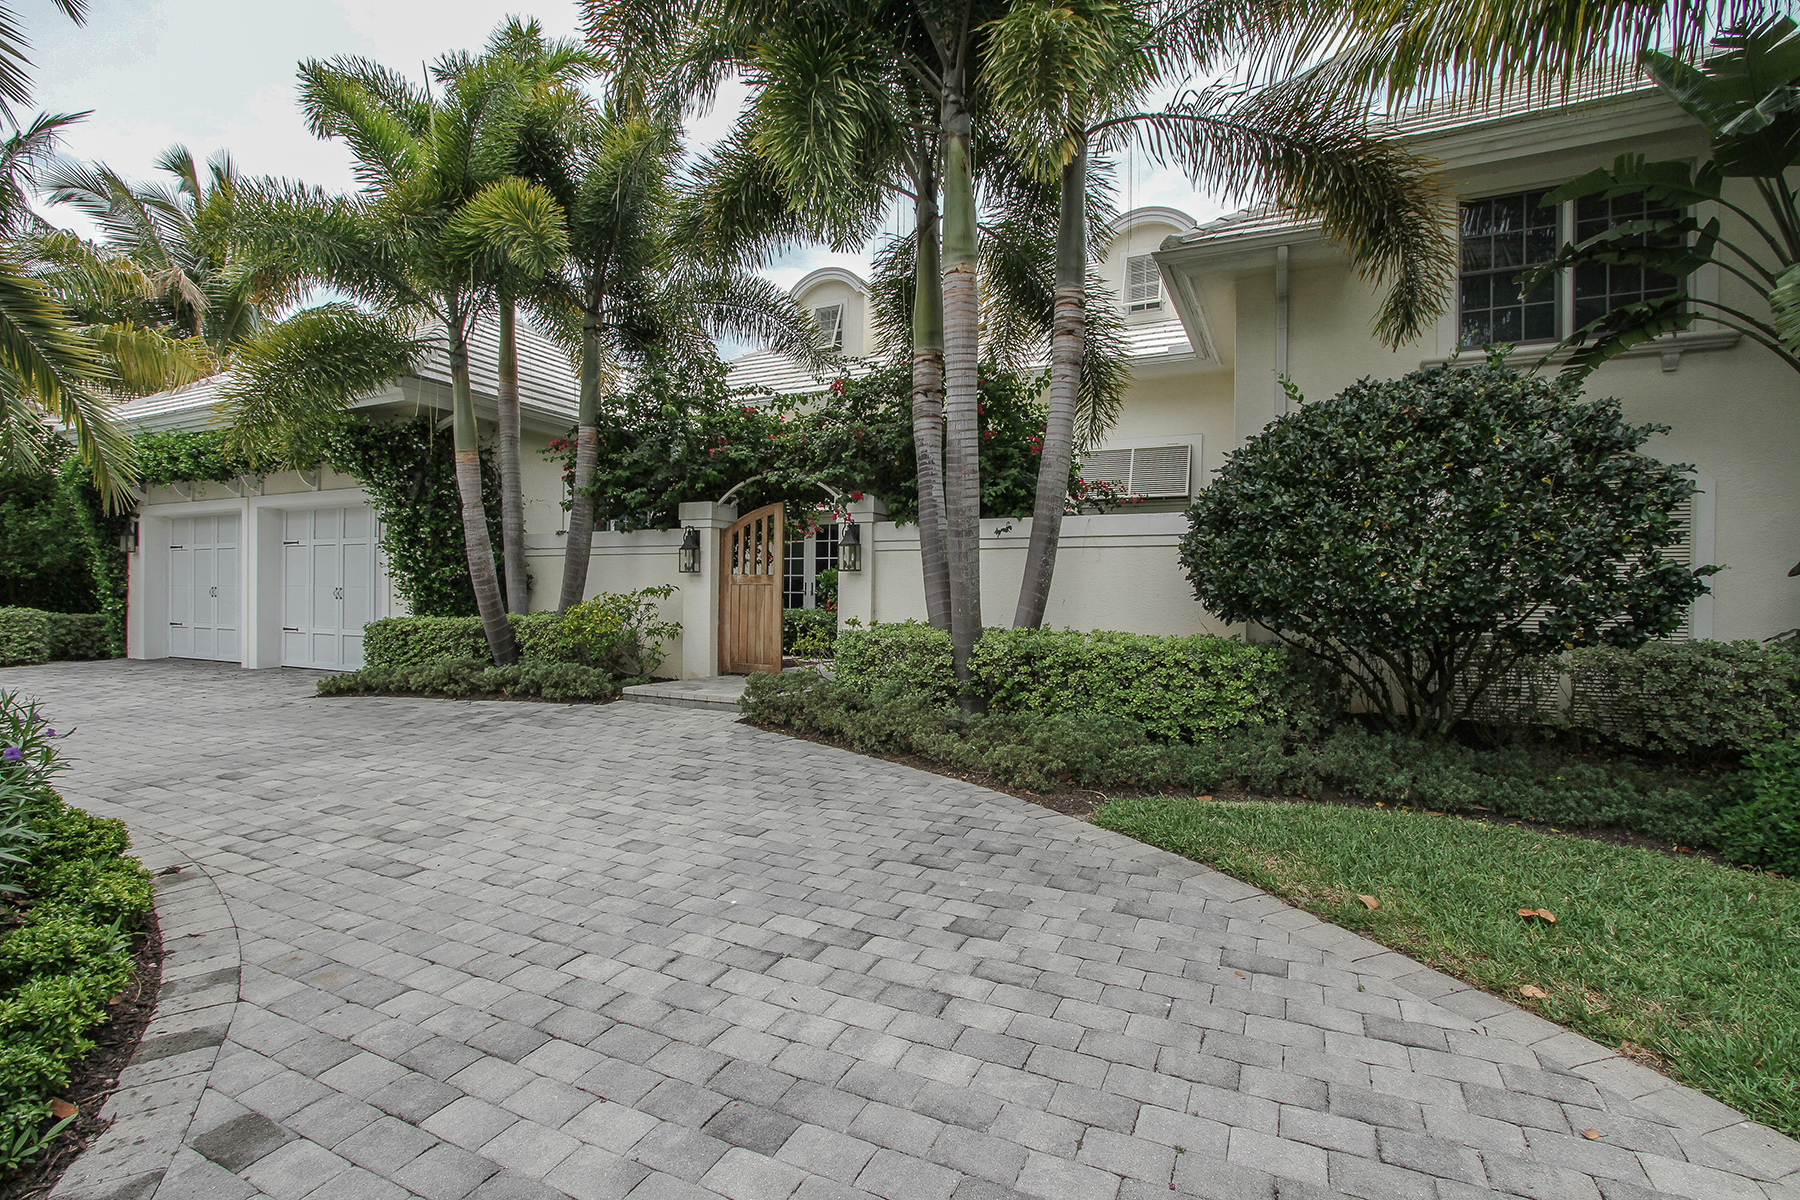 Single Family Home for Rent at PARK SHORE 4117 Belair Ln, Naples, Florida 34103 United States